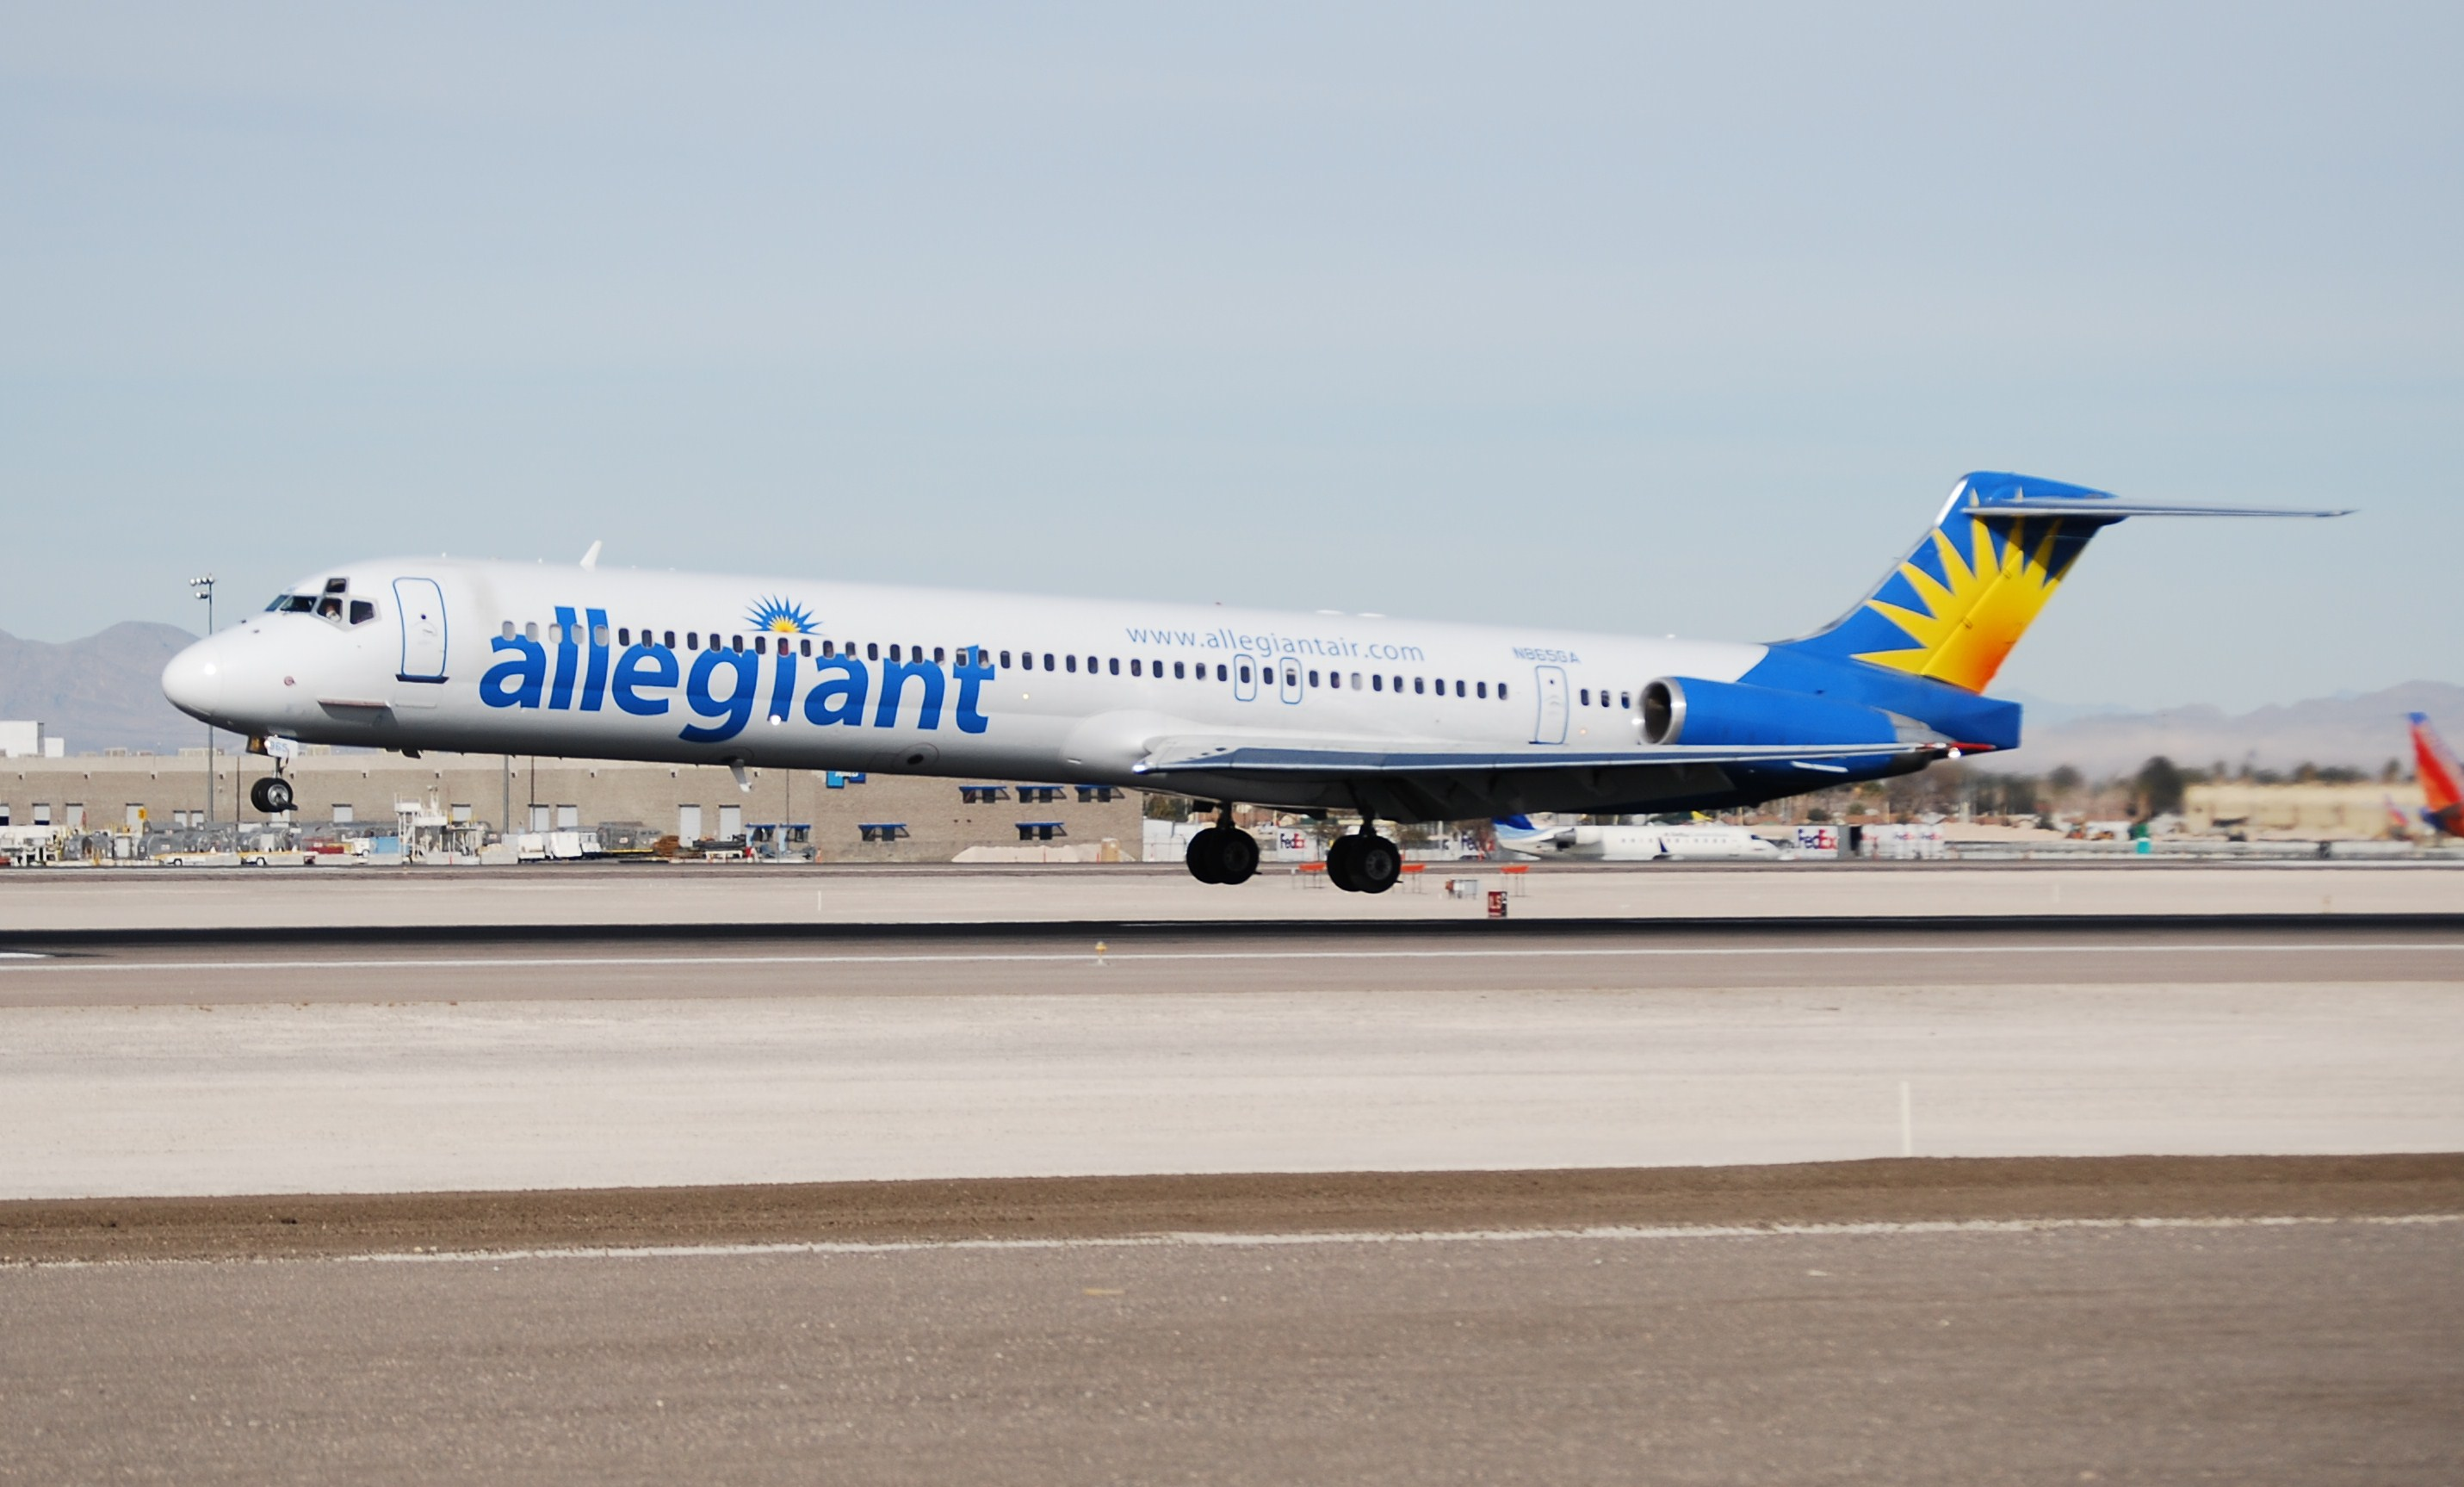 Search all Allegiant Air flights and book airline tickets with eDreams. Compare prices, routes and read Allegiant Air customer reviews before you book.